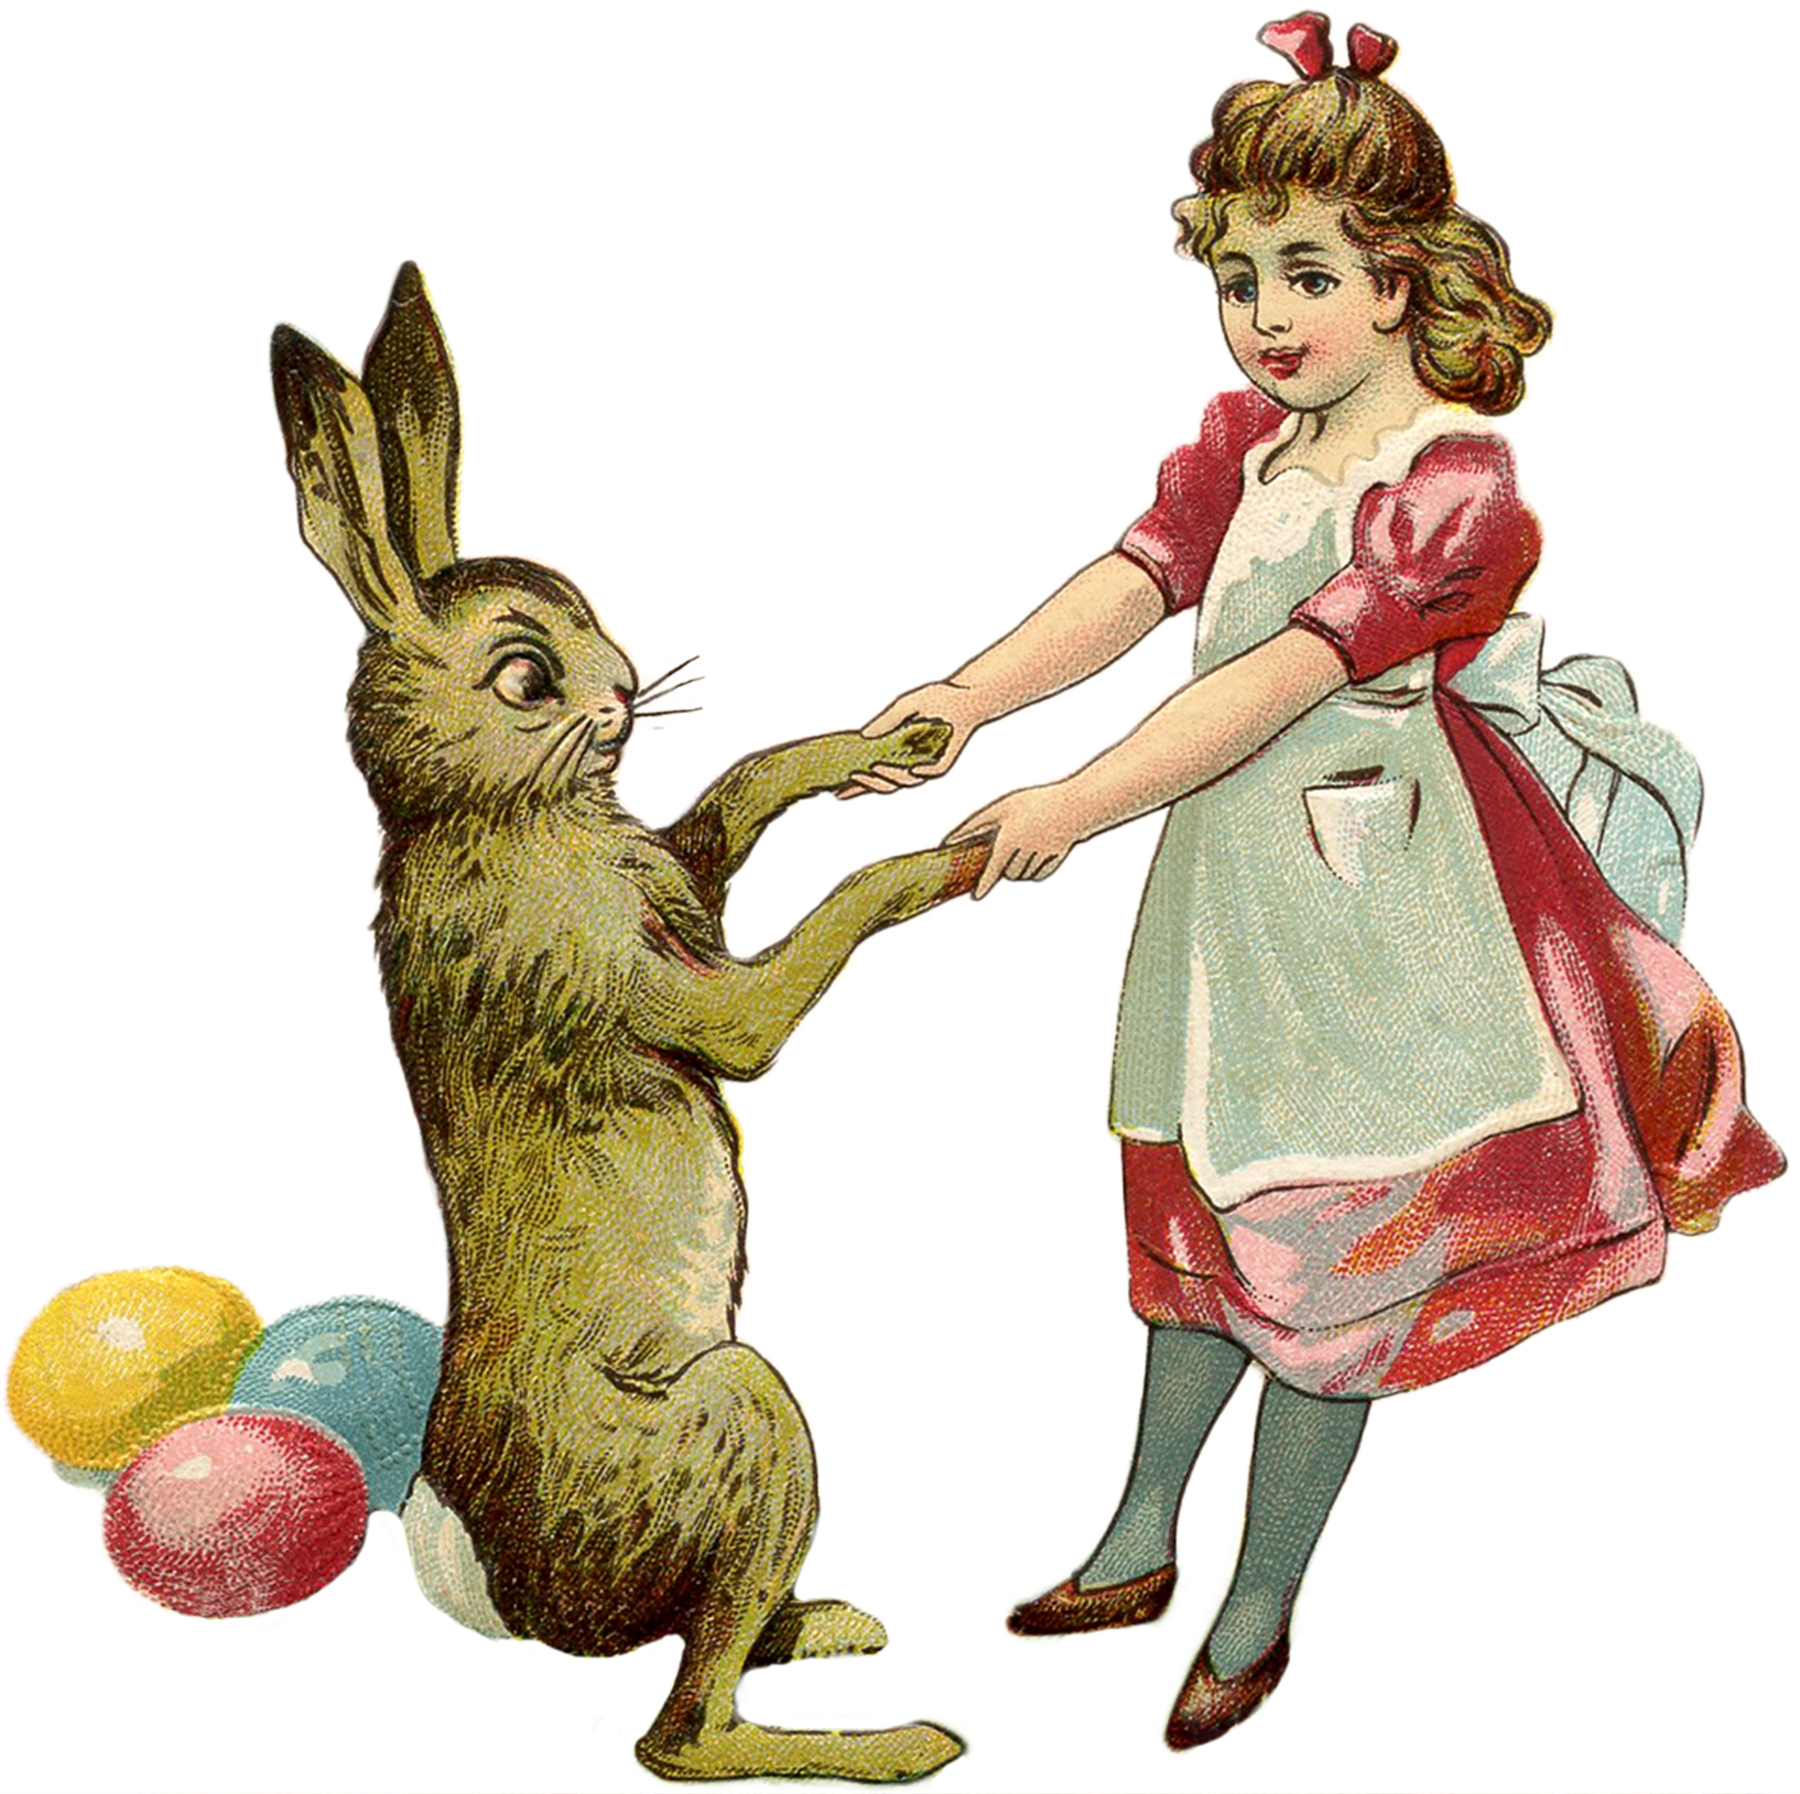 Free Vintage Easter Bunny Images.